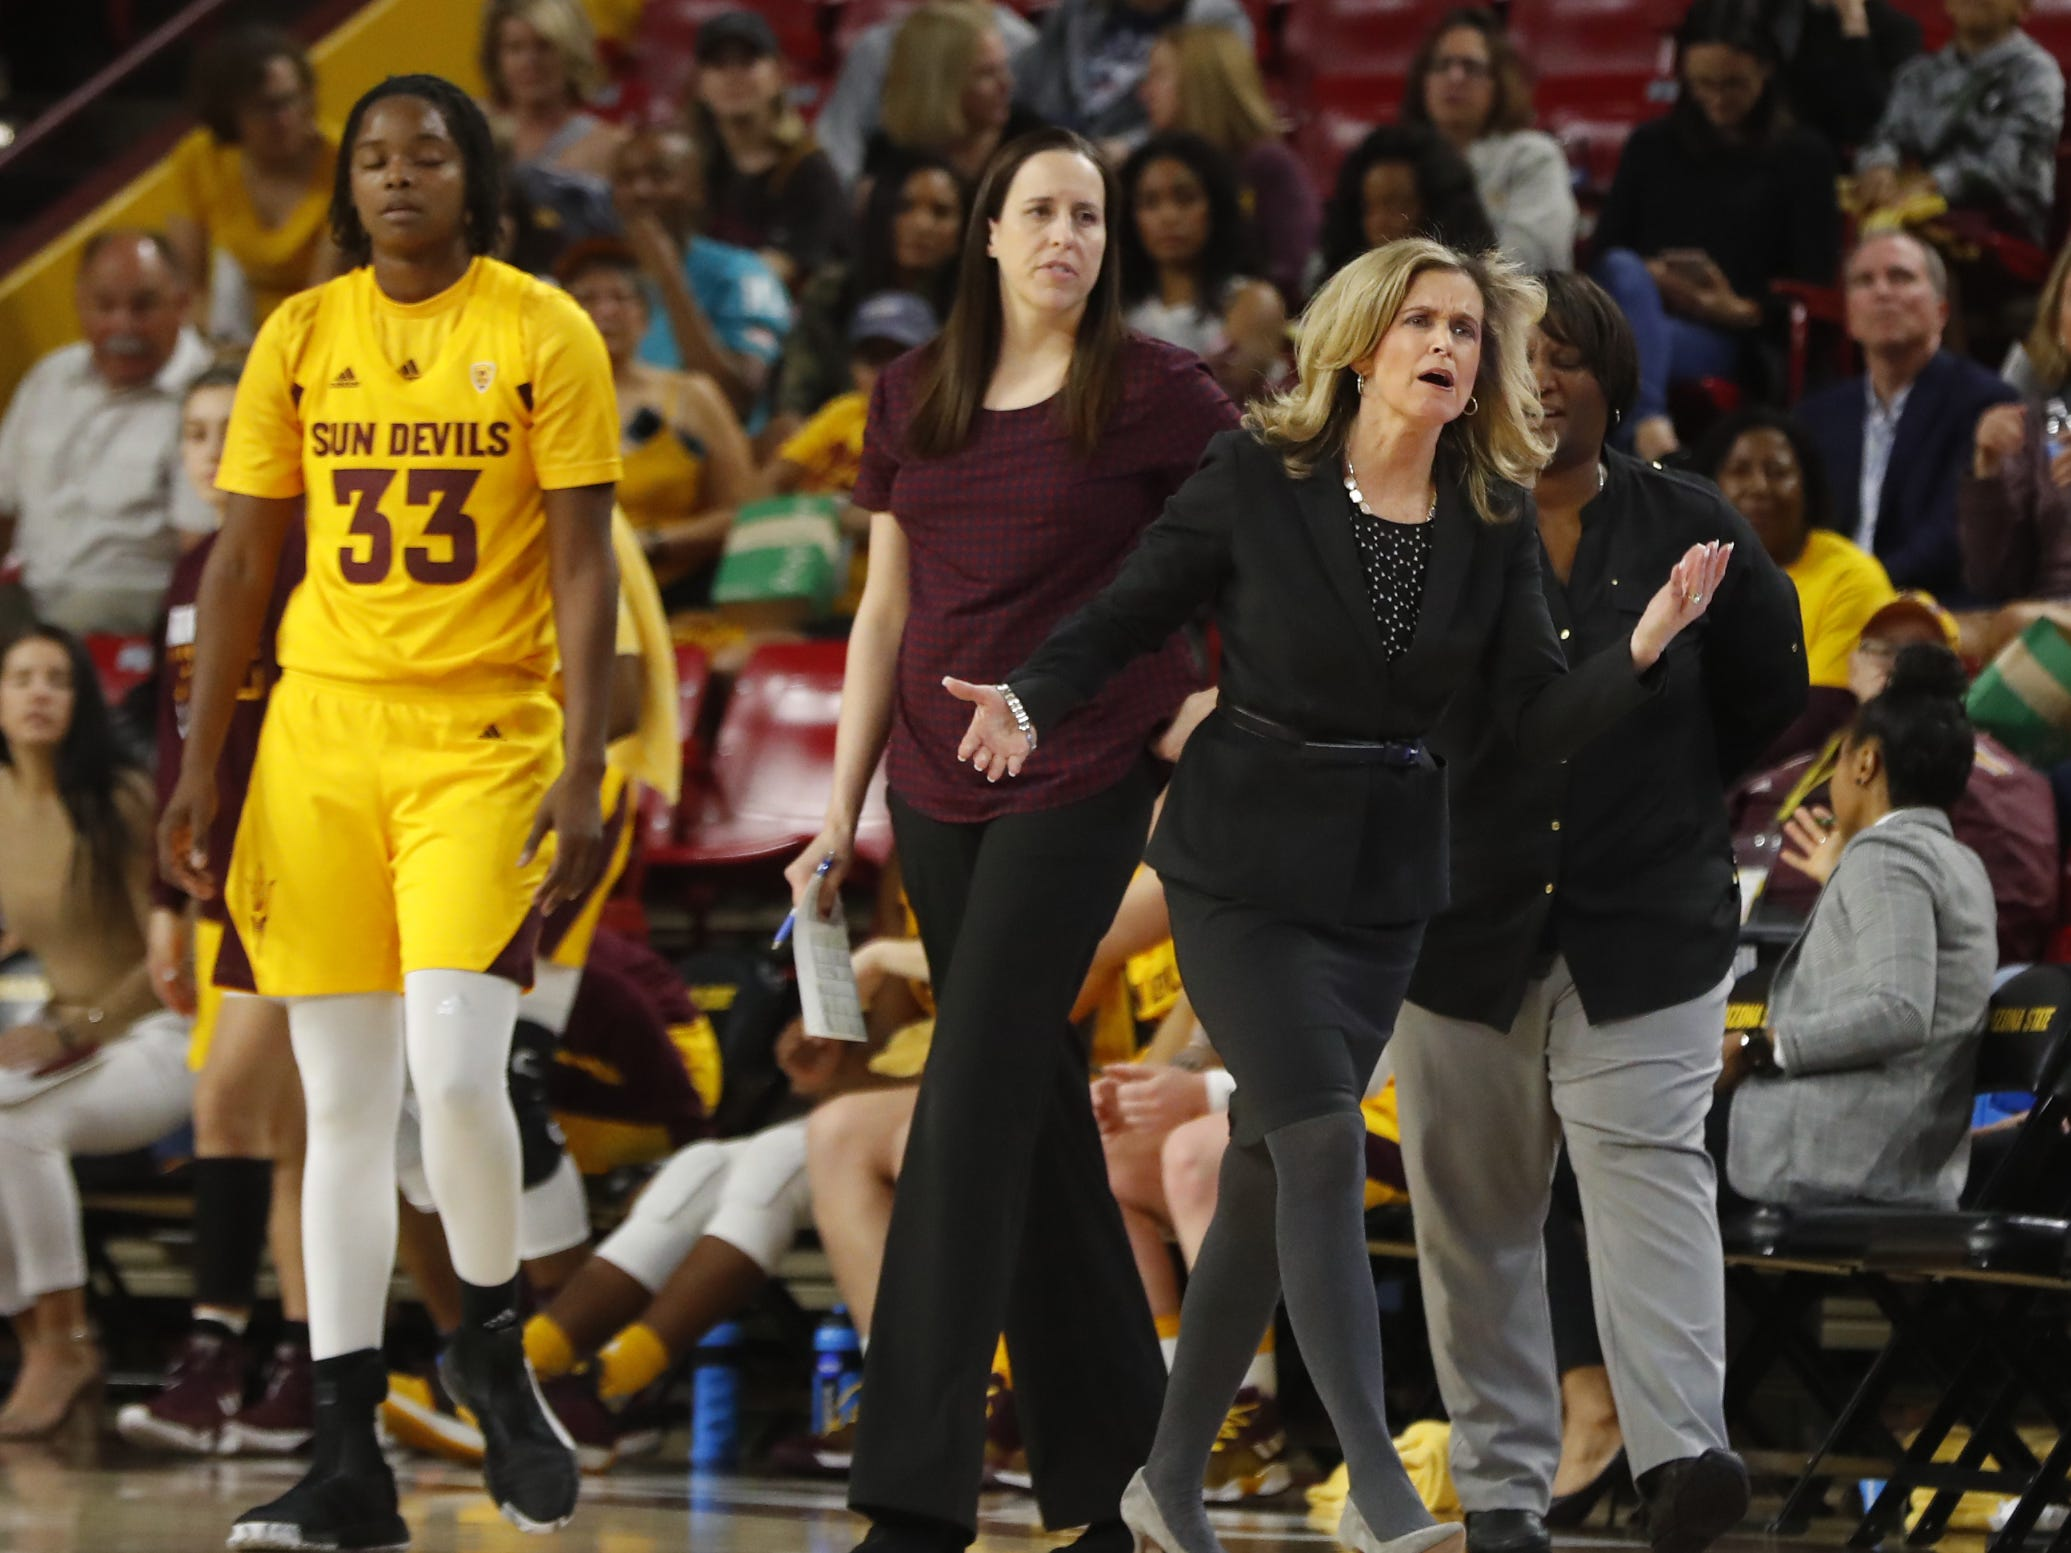 ASU's head coach Charli Turner Thorne argues with an official during the first half against Arizona at Wells Fargo Arena in Tempe, Ariz. on February 1, 2019.